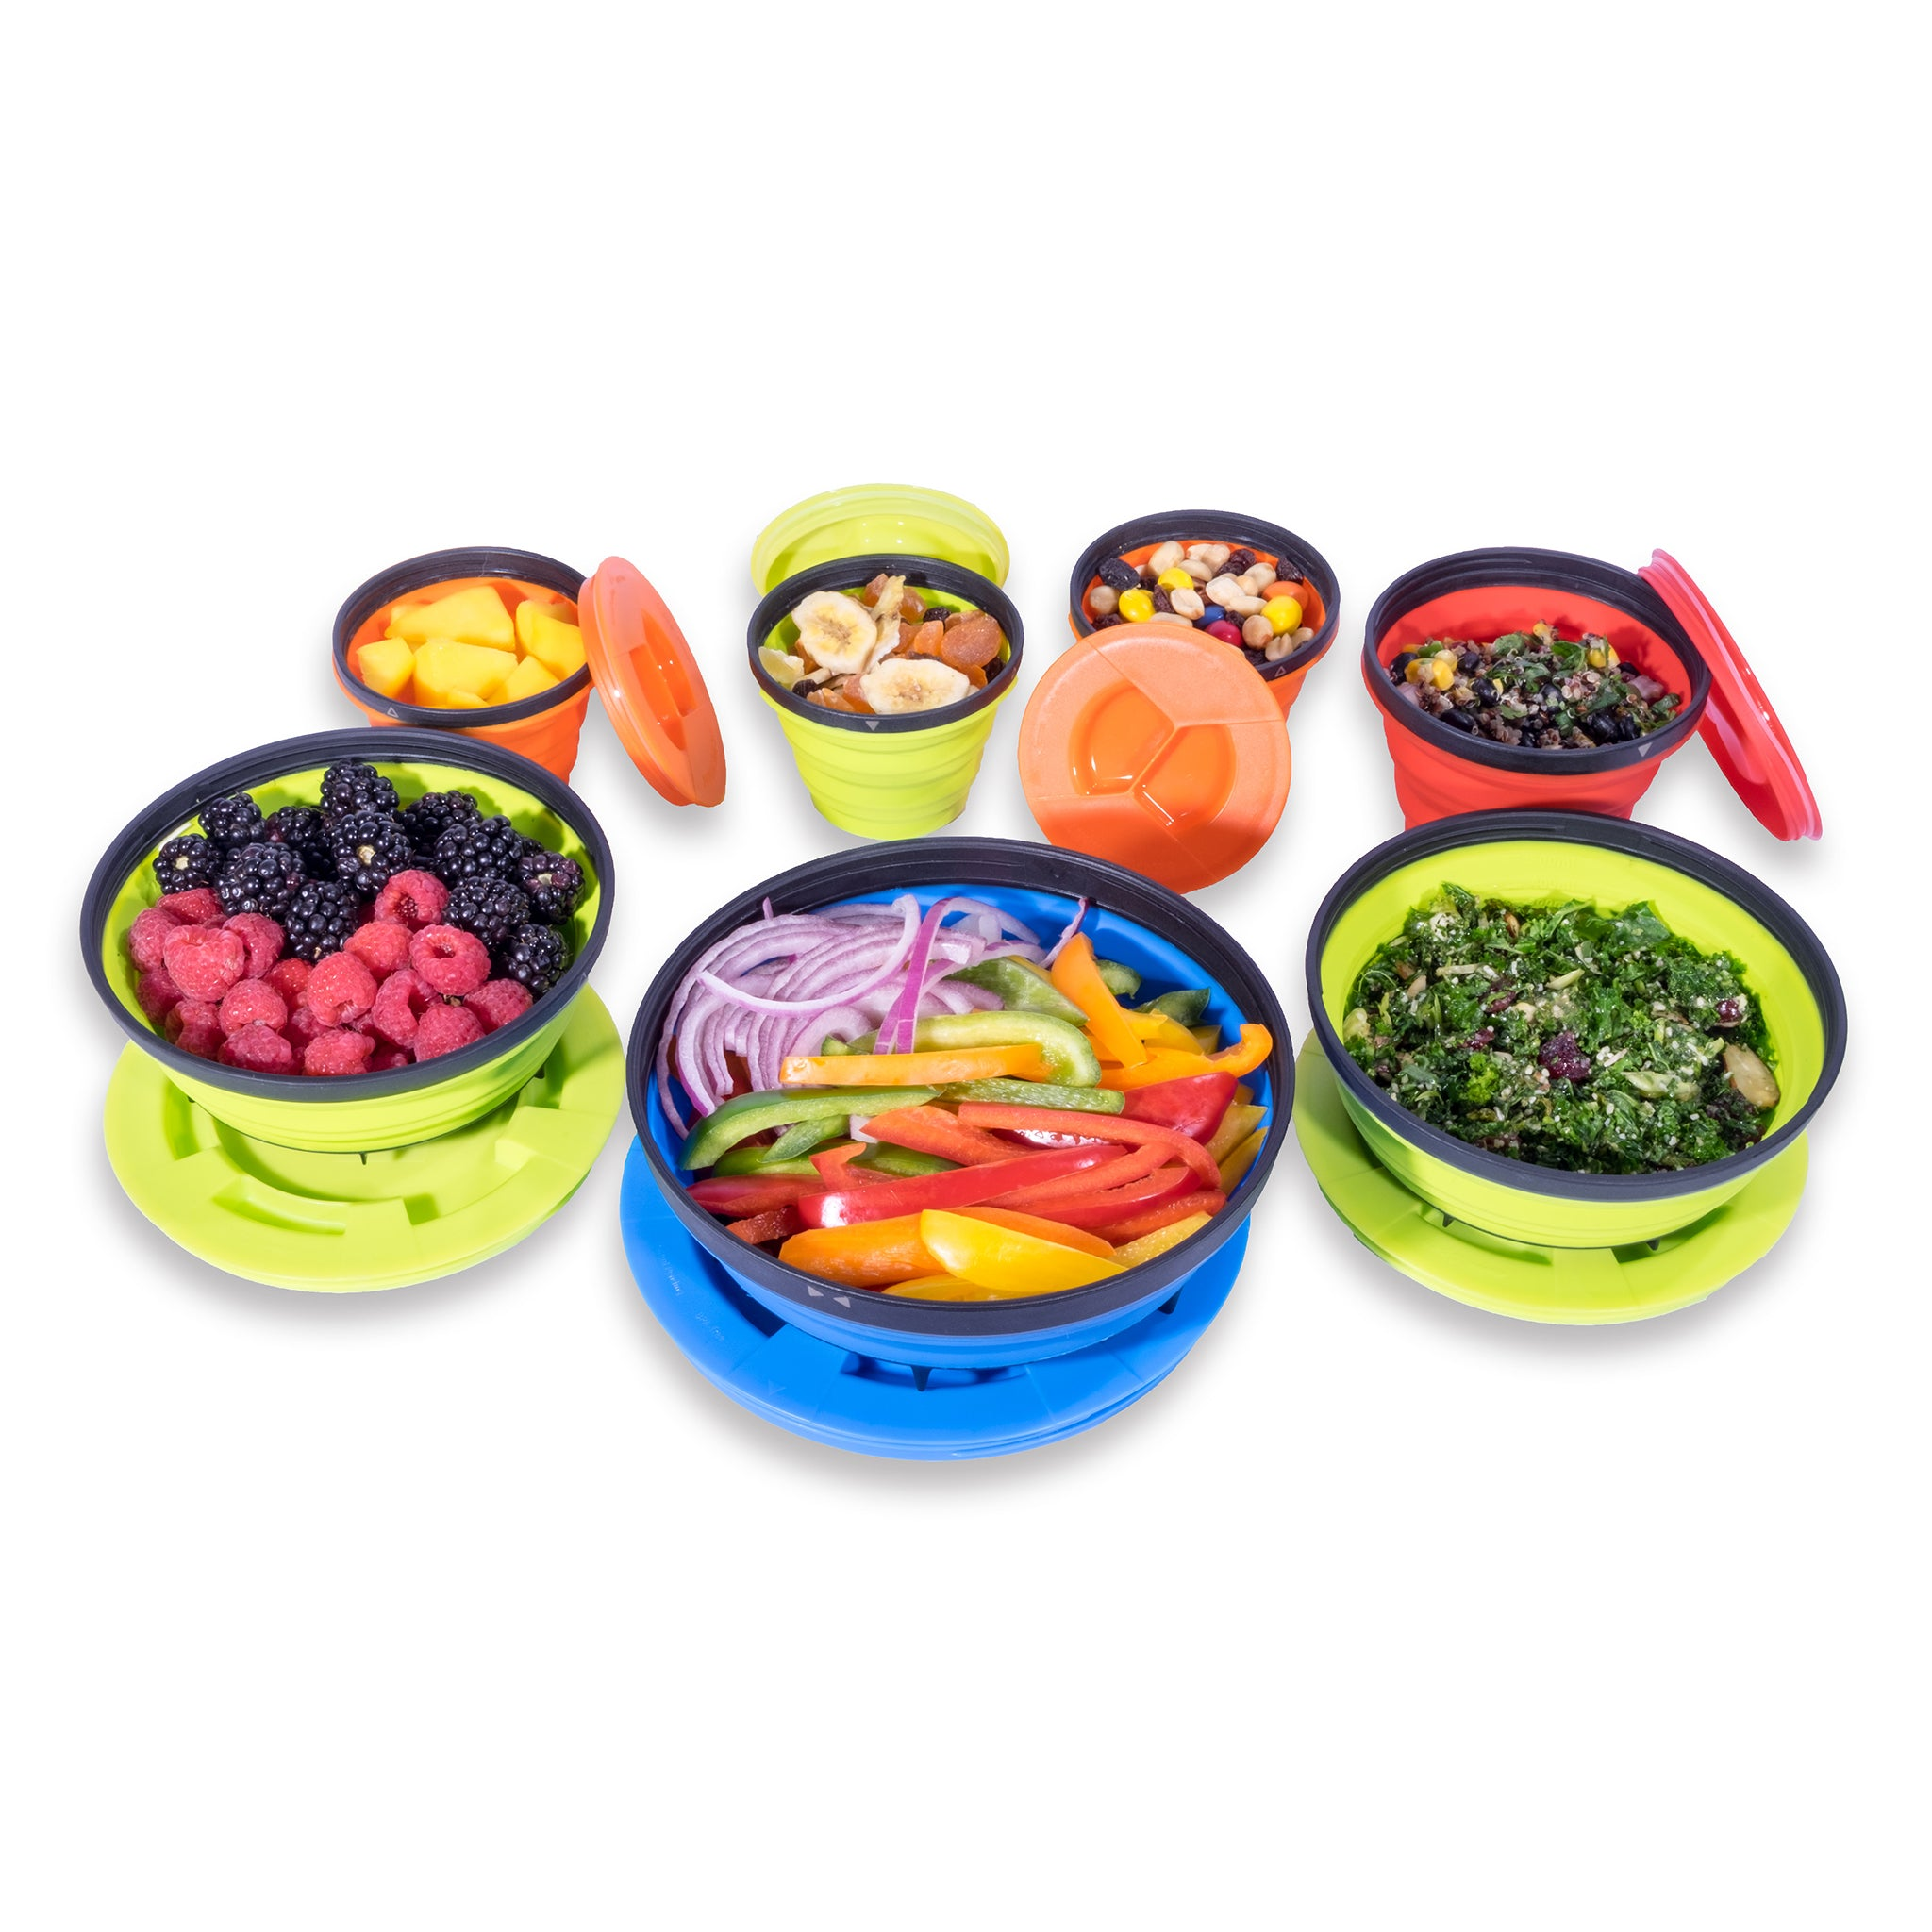 X Seal & Go_Collapsible Container_food storage